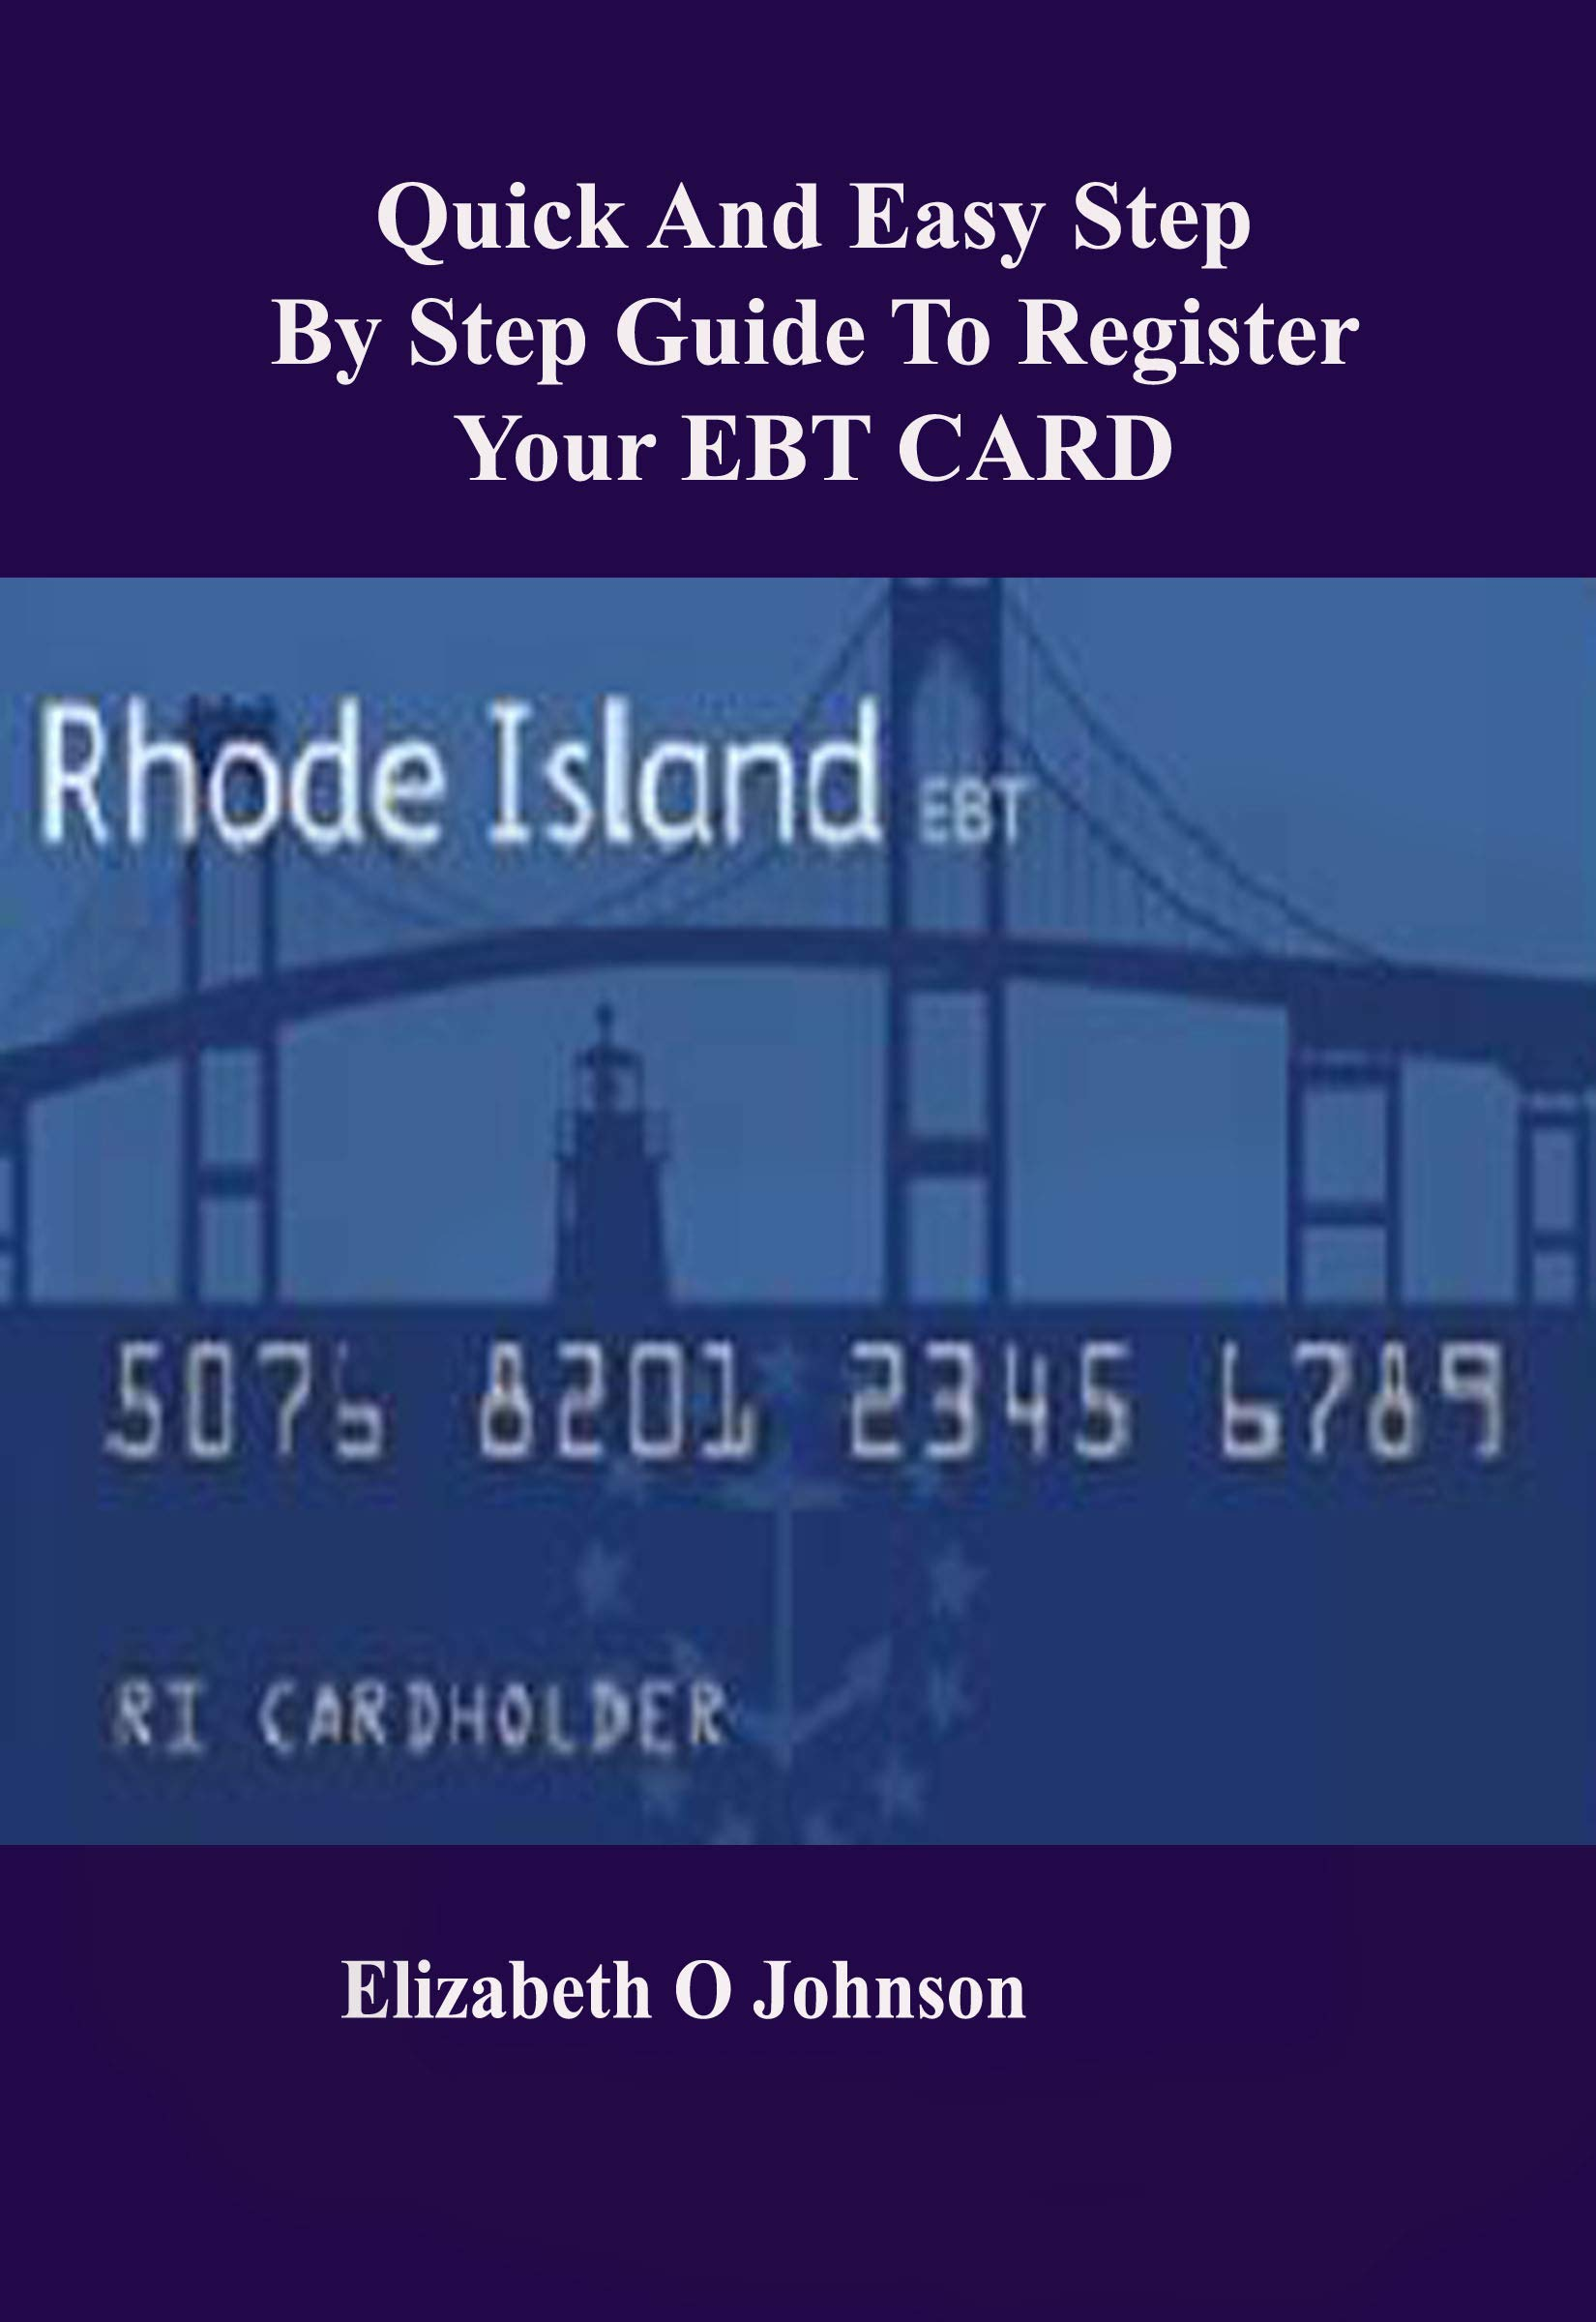 Quick And Easy Step By Step Guide To Register Your EBT CARD